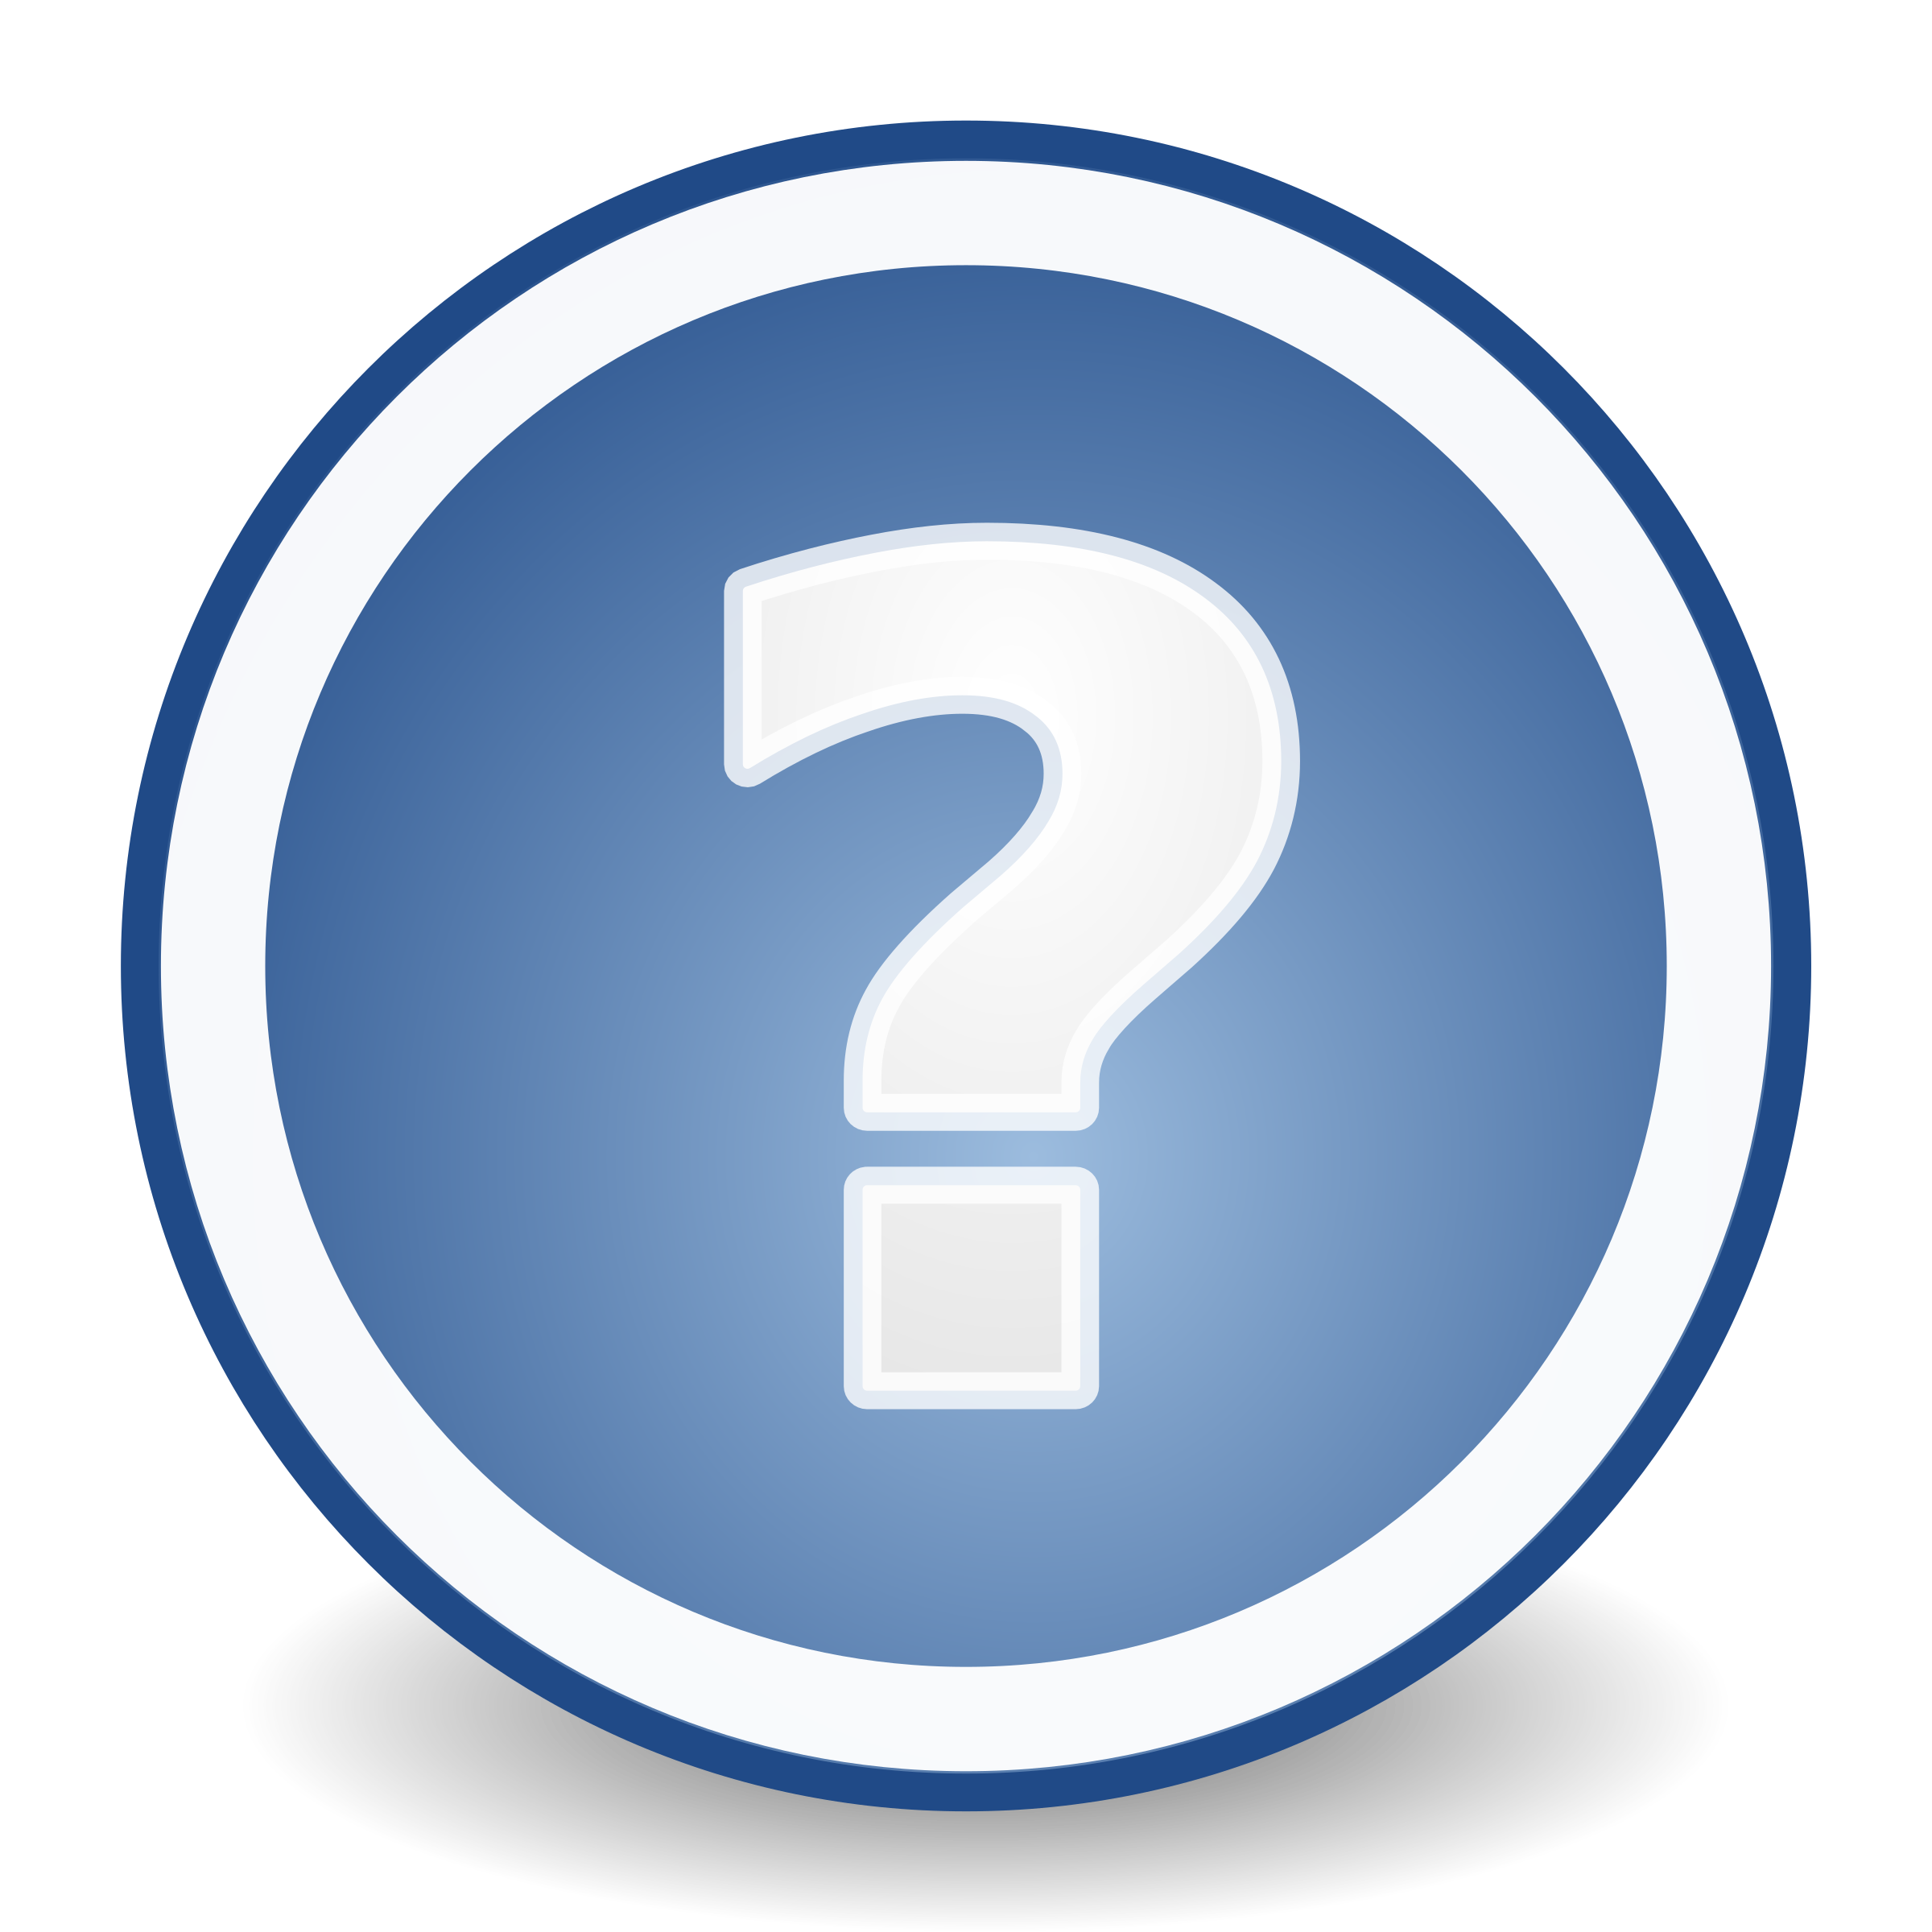 Lications Questionmark Png